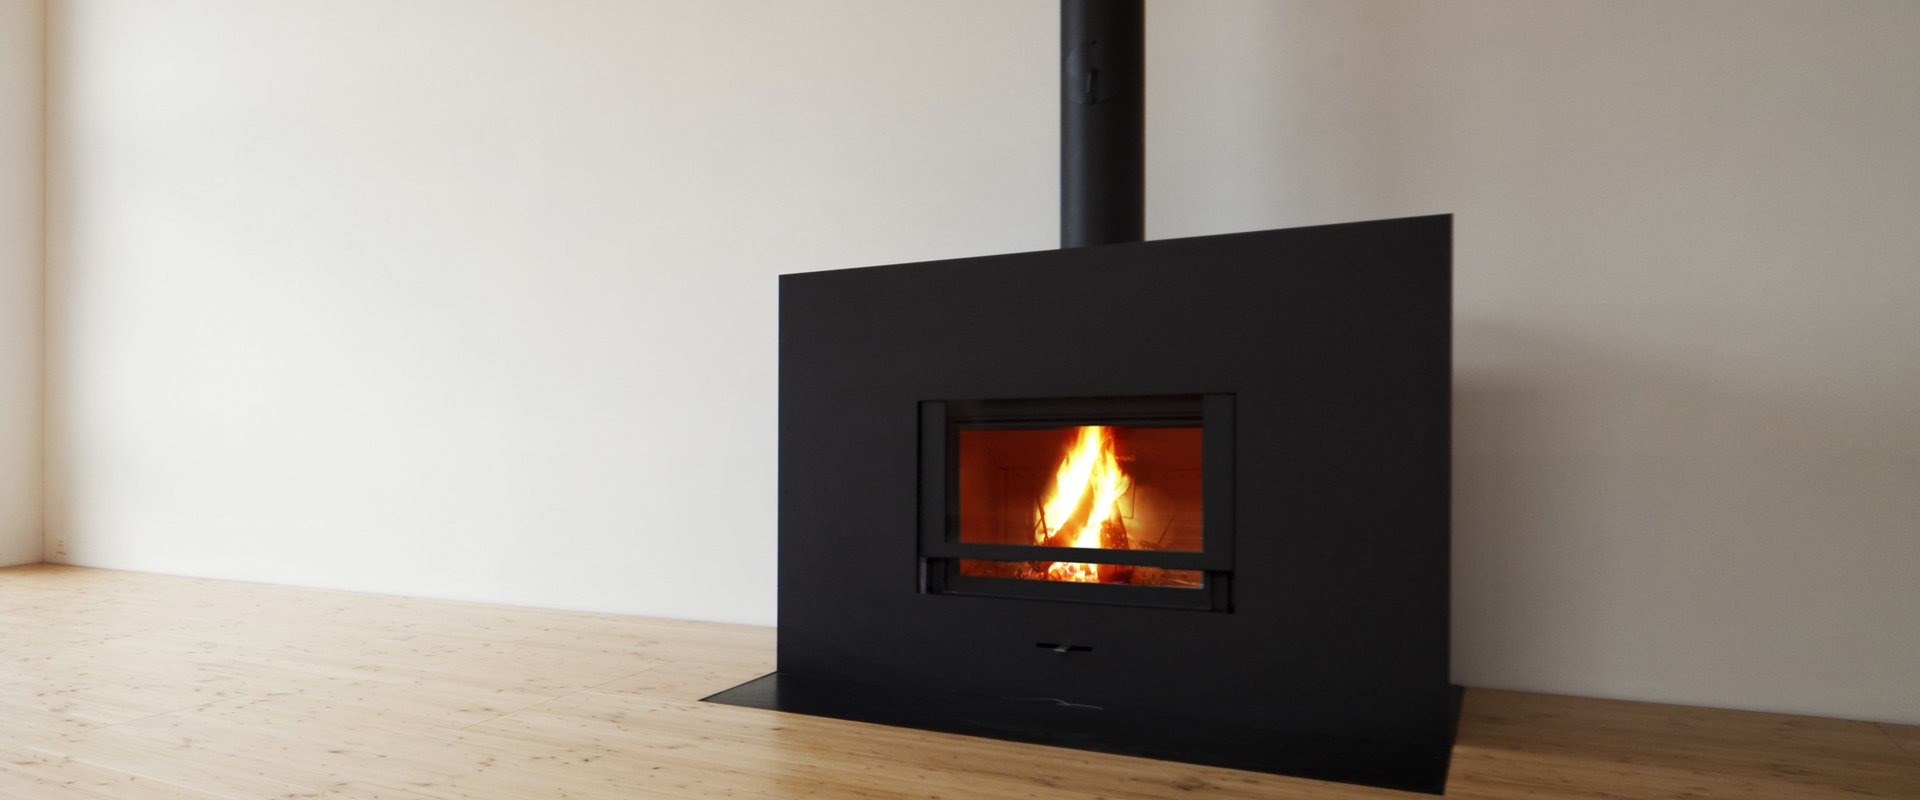 Aduro and asgard stoves